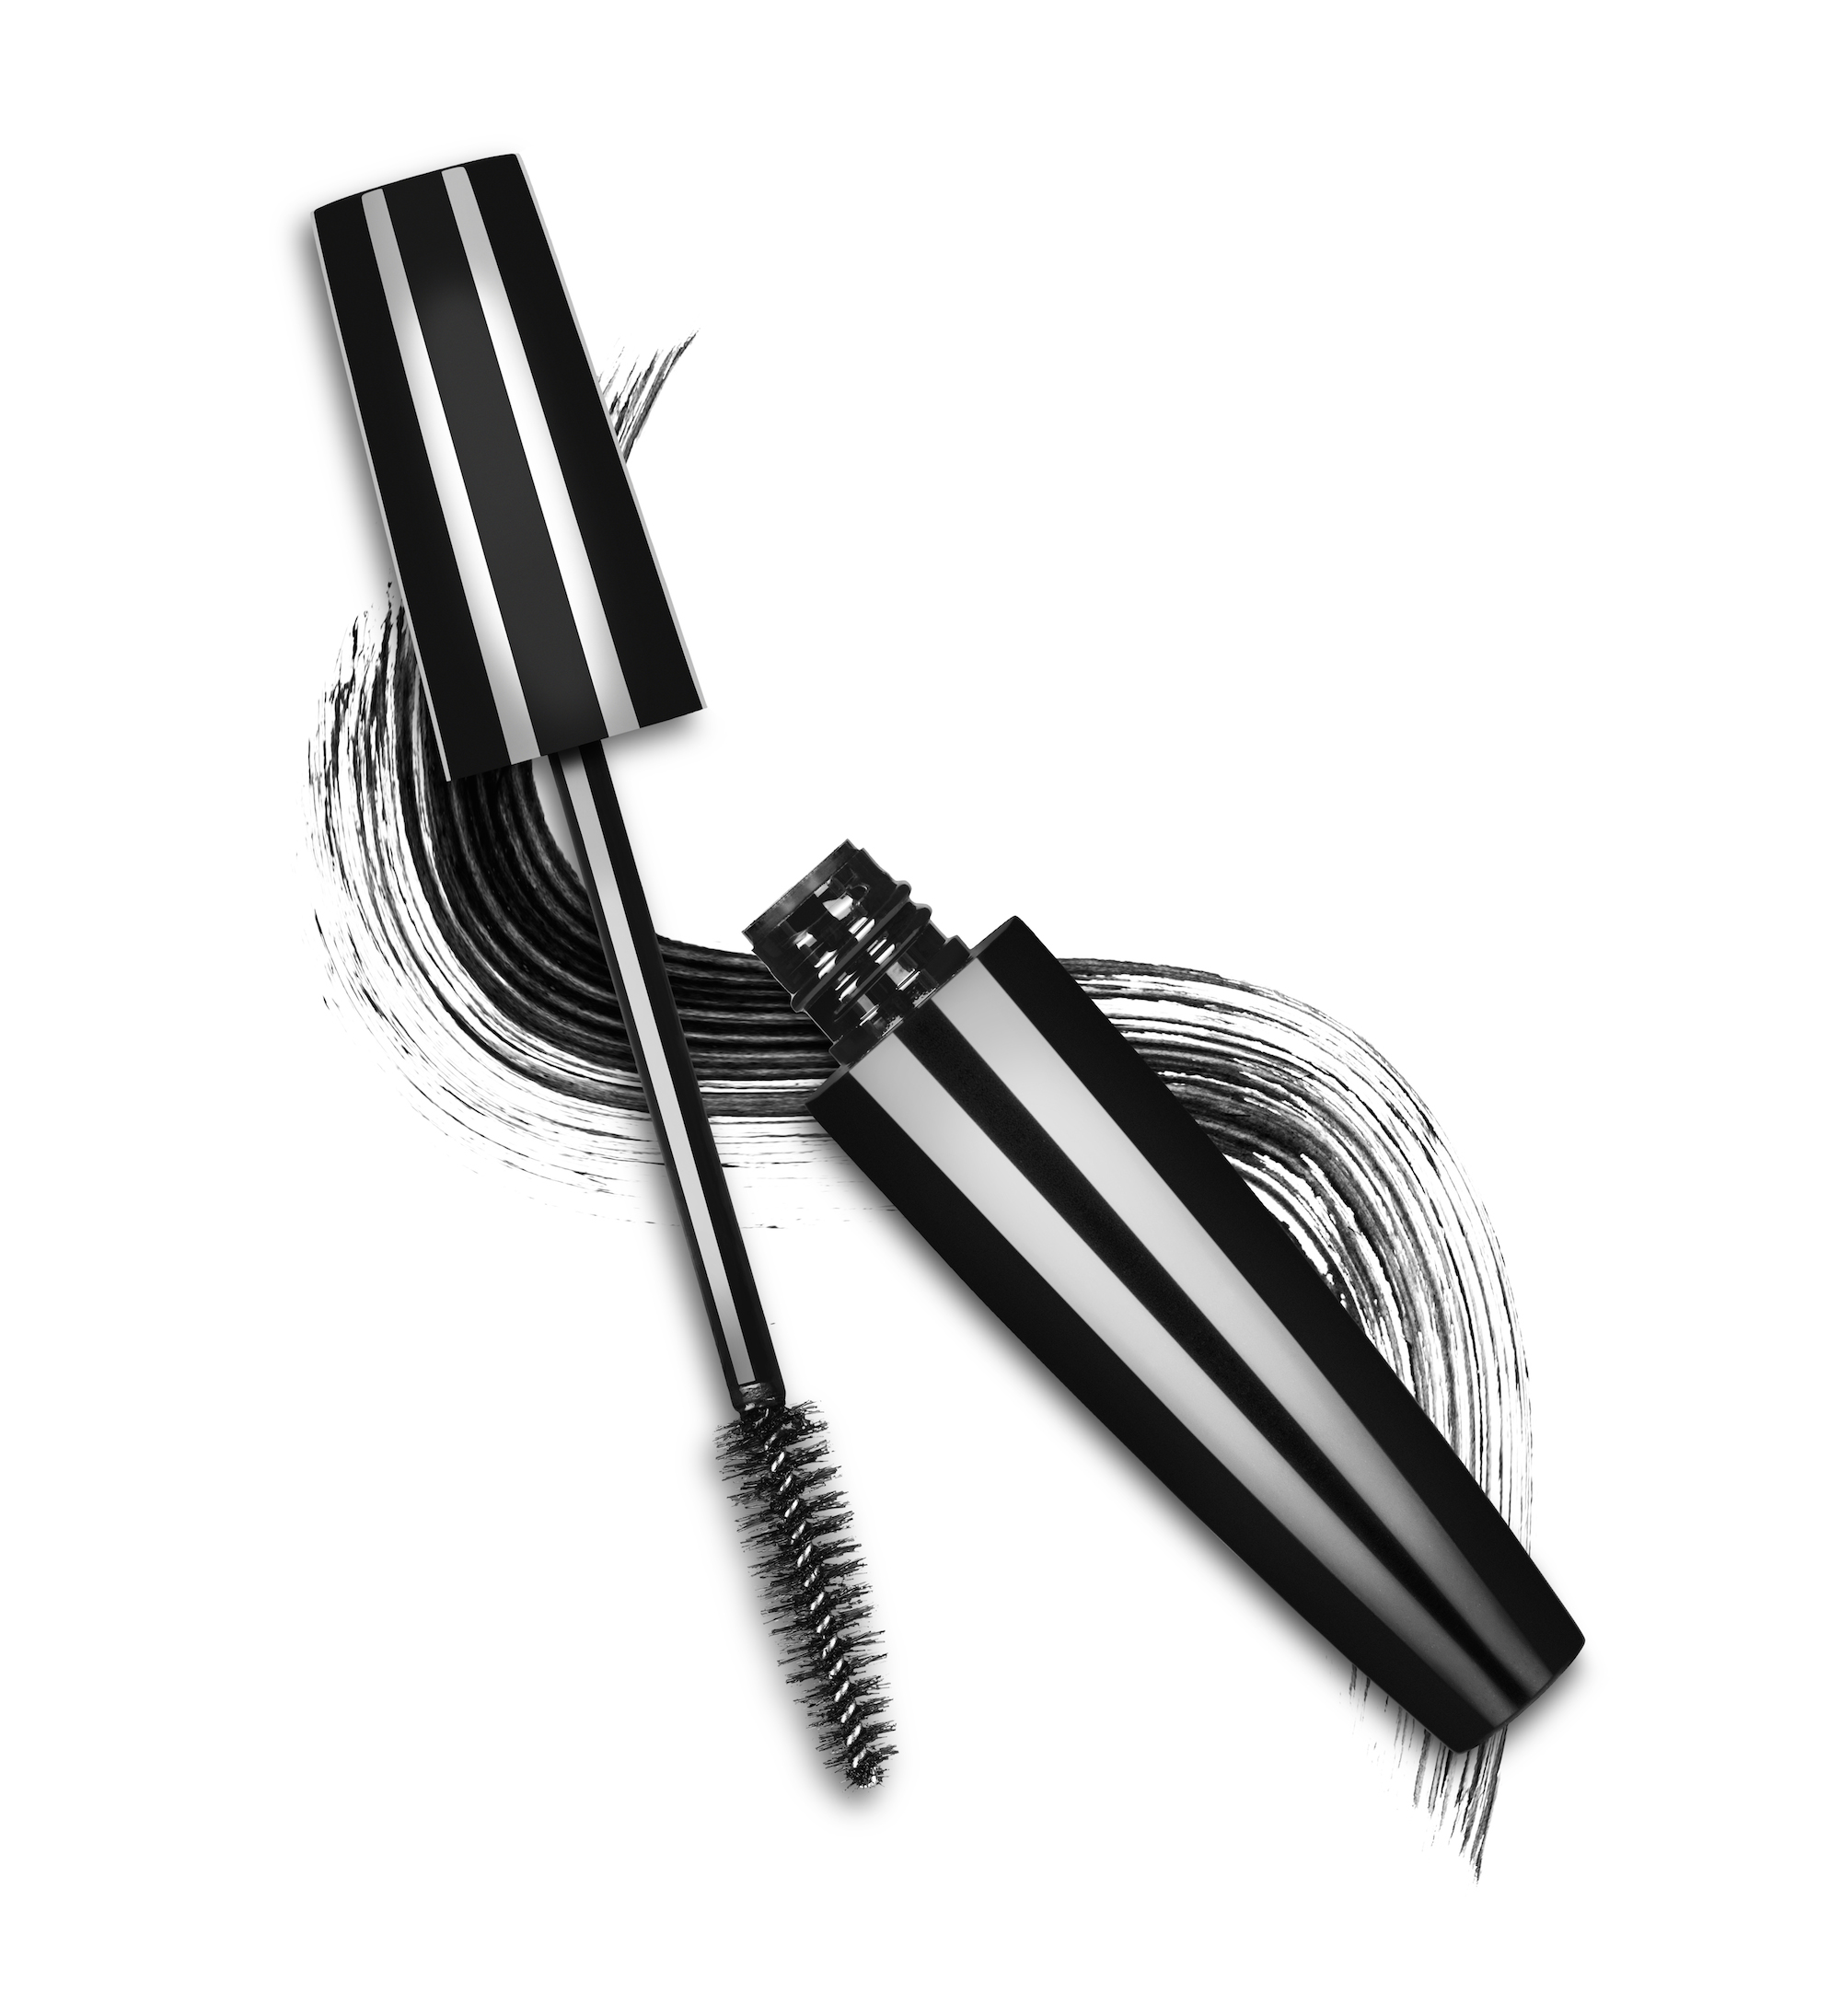 Mascara: i low cost di qualità